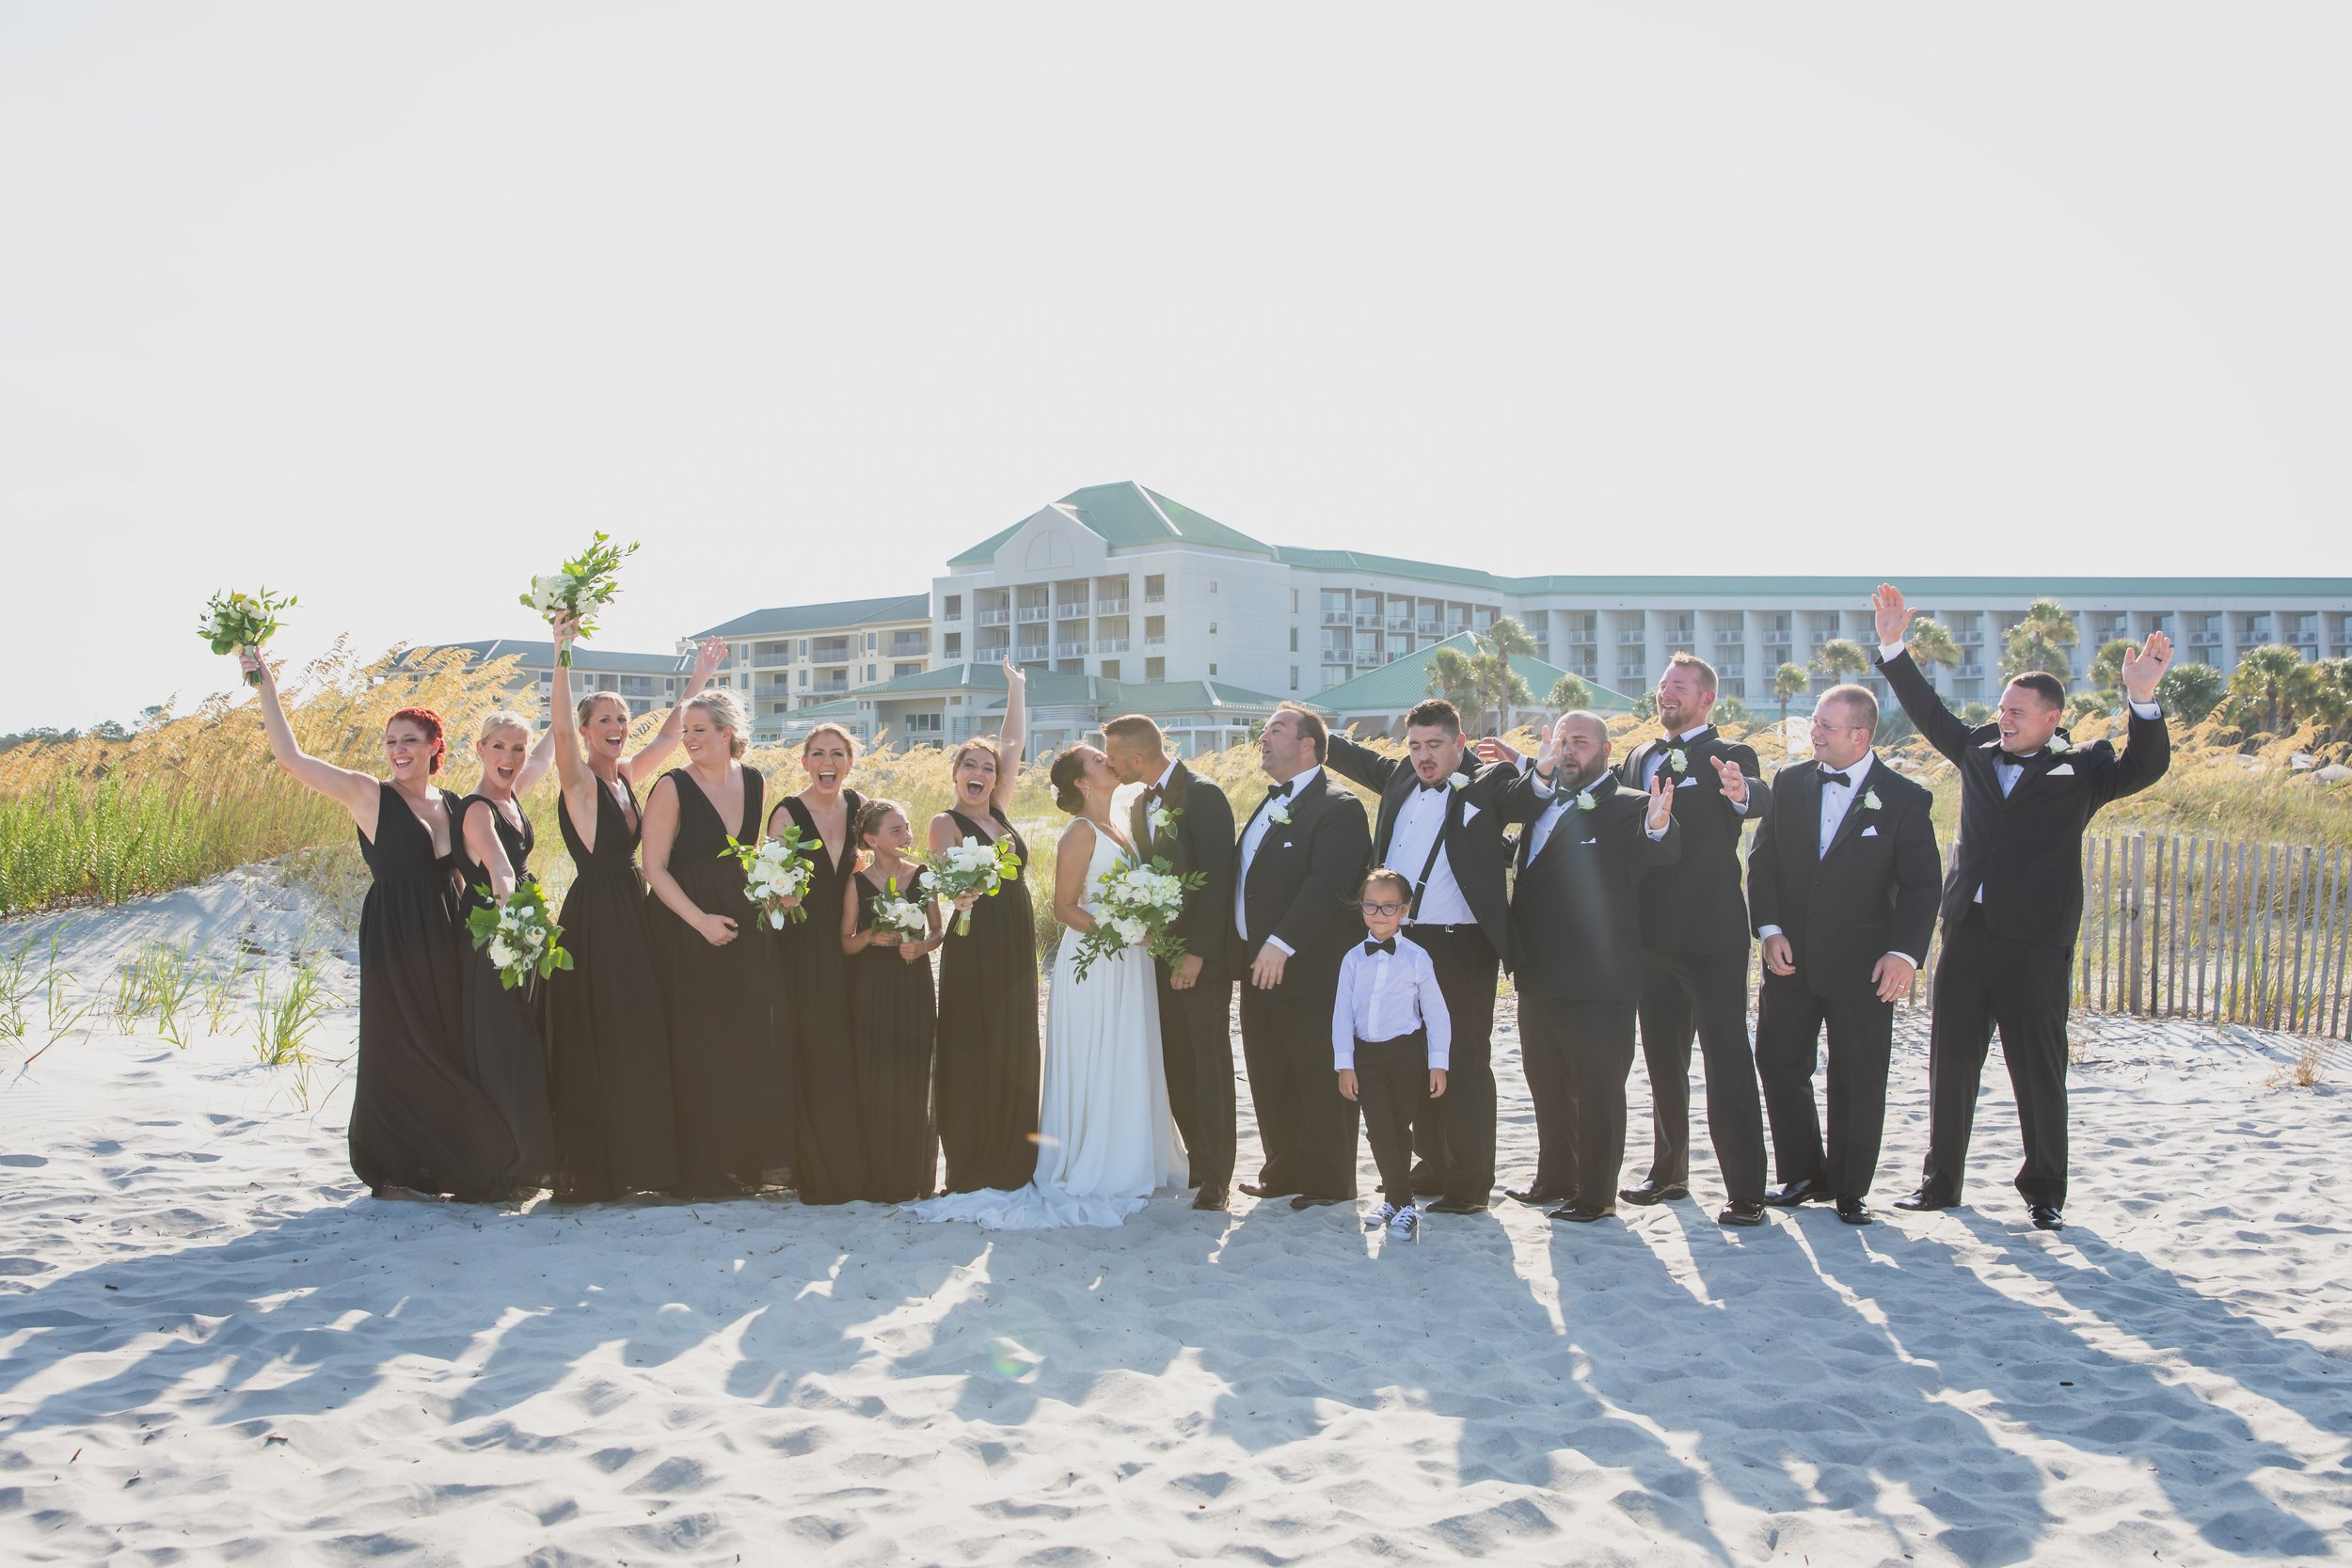 hilton-head-sc-wedding-photography-bridal-party